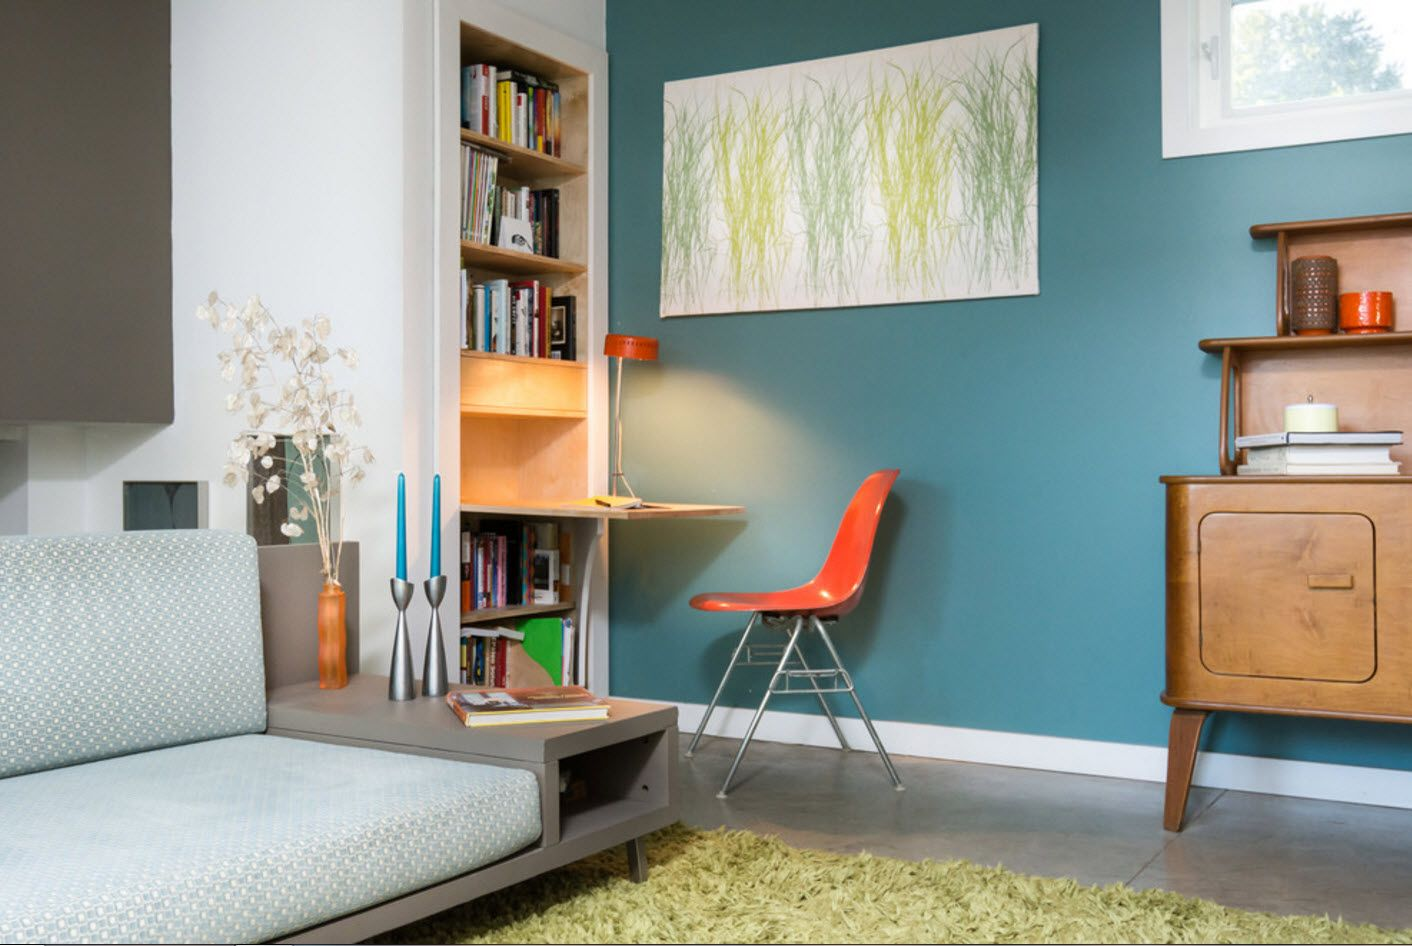 Top 100 Modern Home Office Design Trends 2017. Blue accent wall with books at the big shelf with orange chair near the table